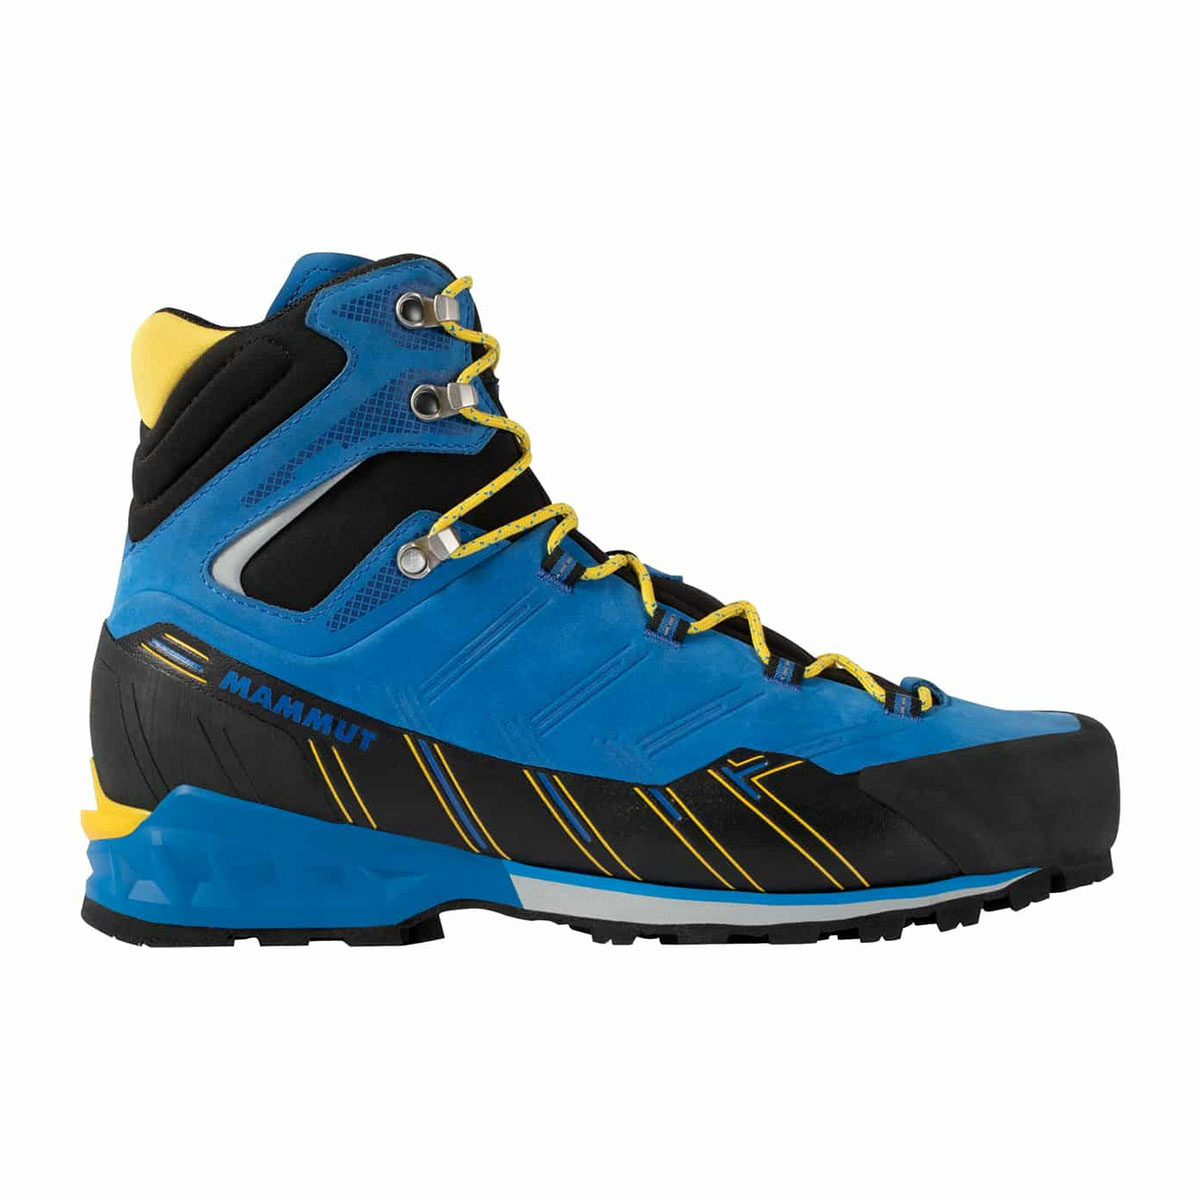 Kento Guide High GTX Men blau